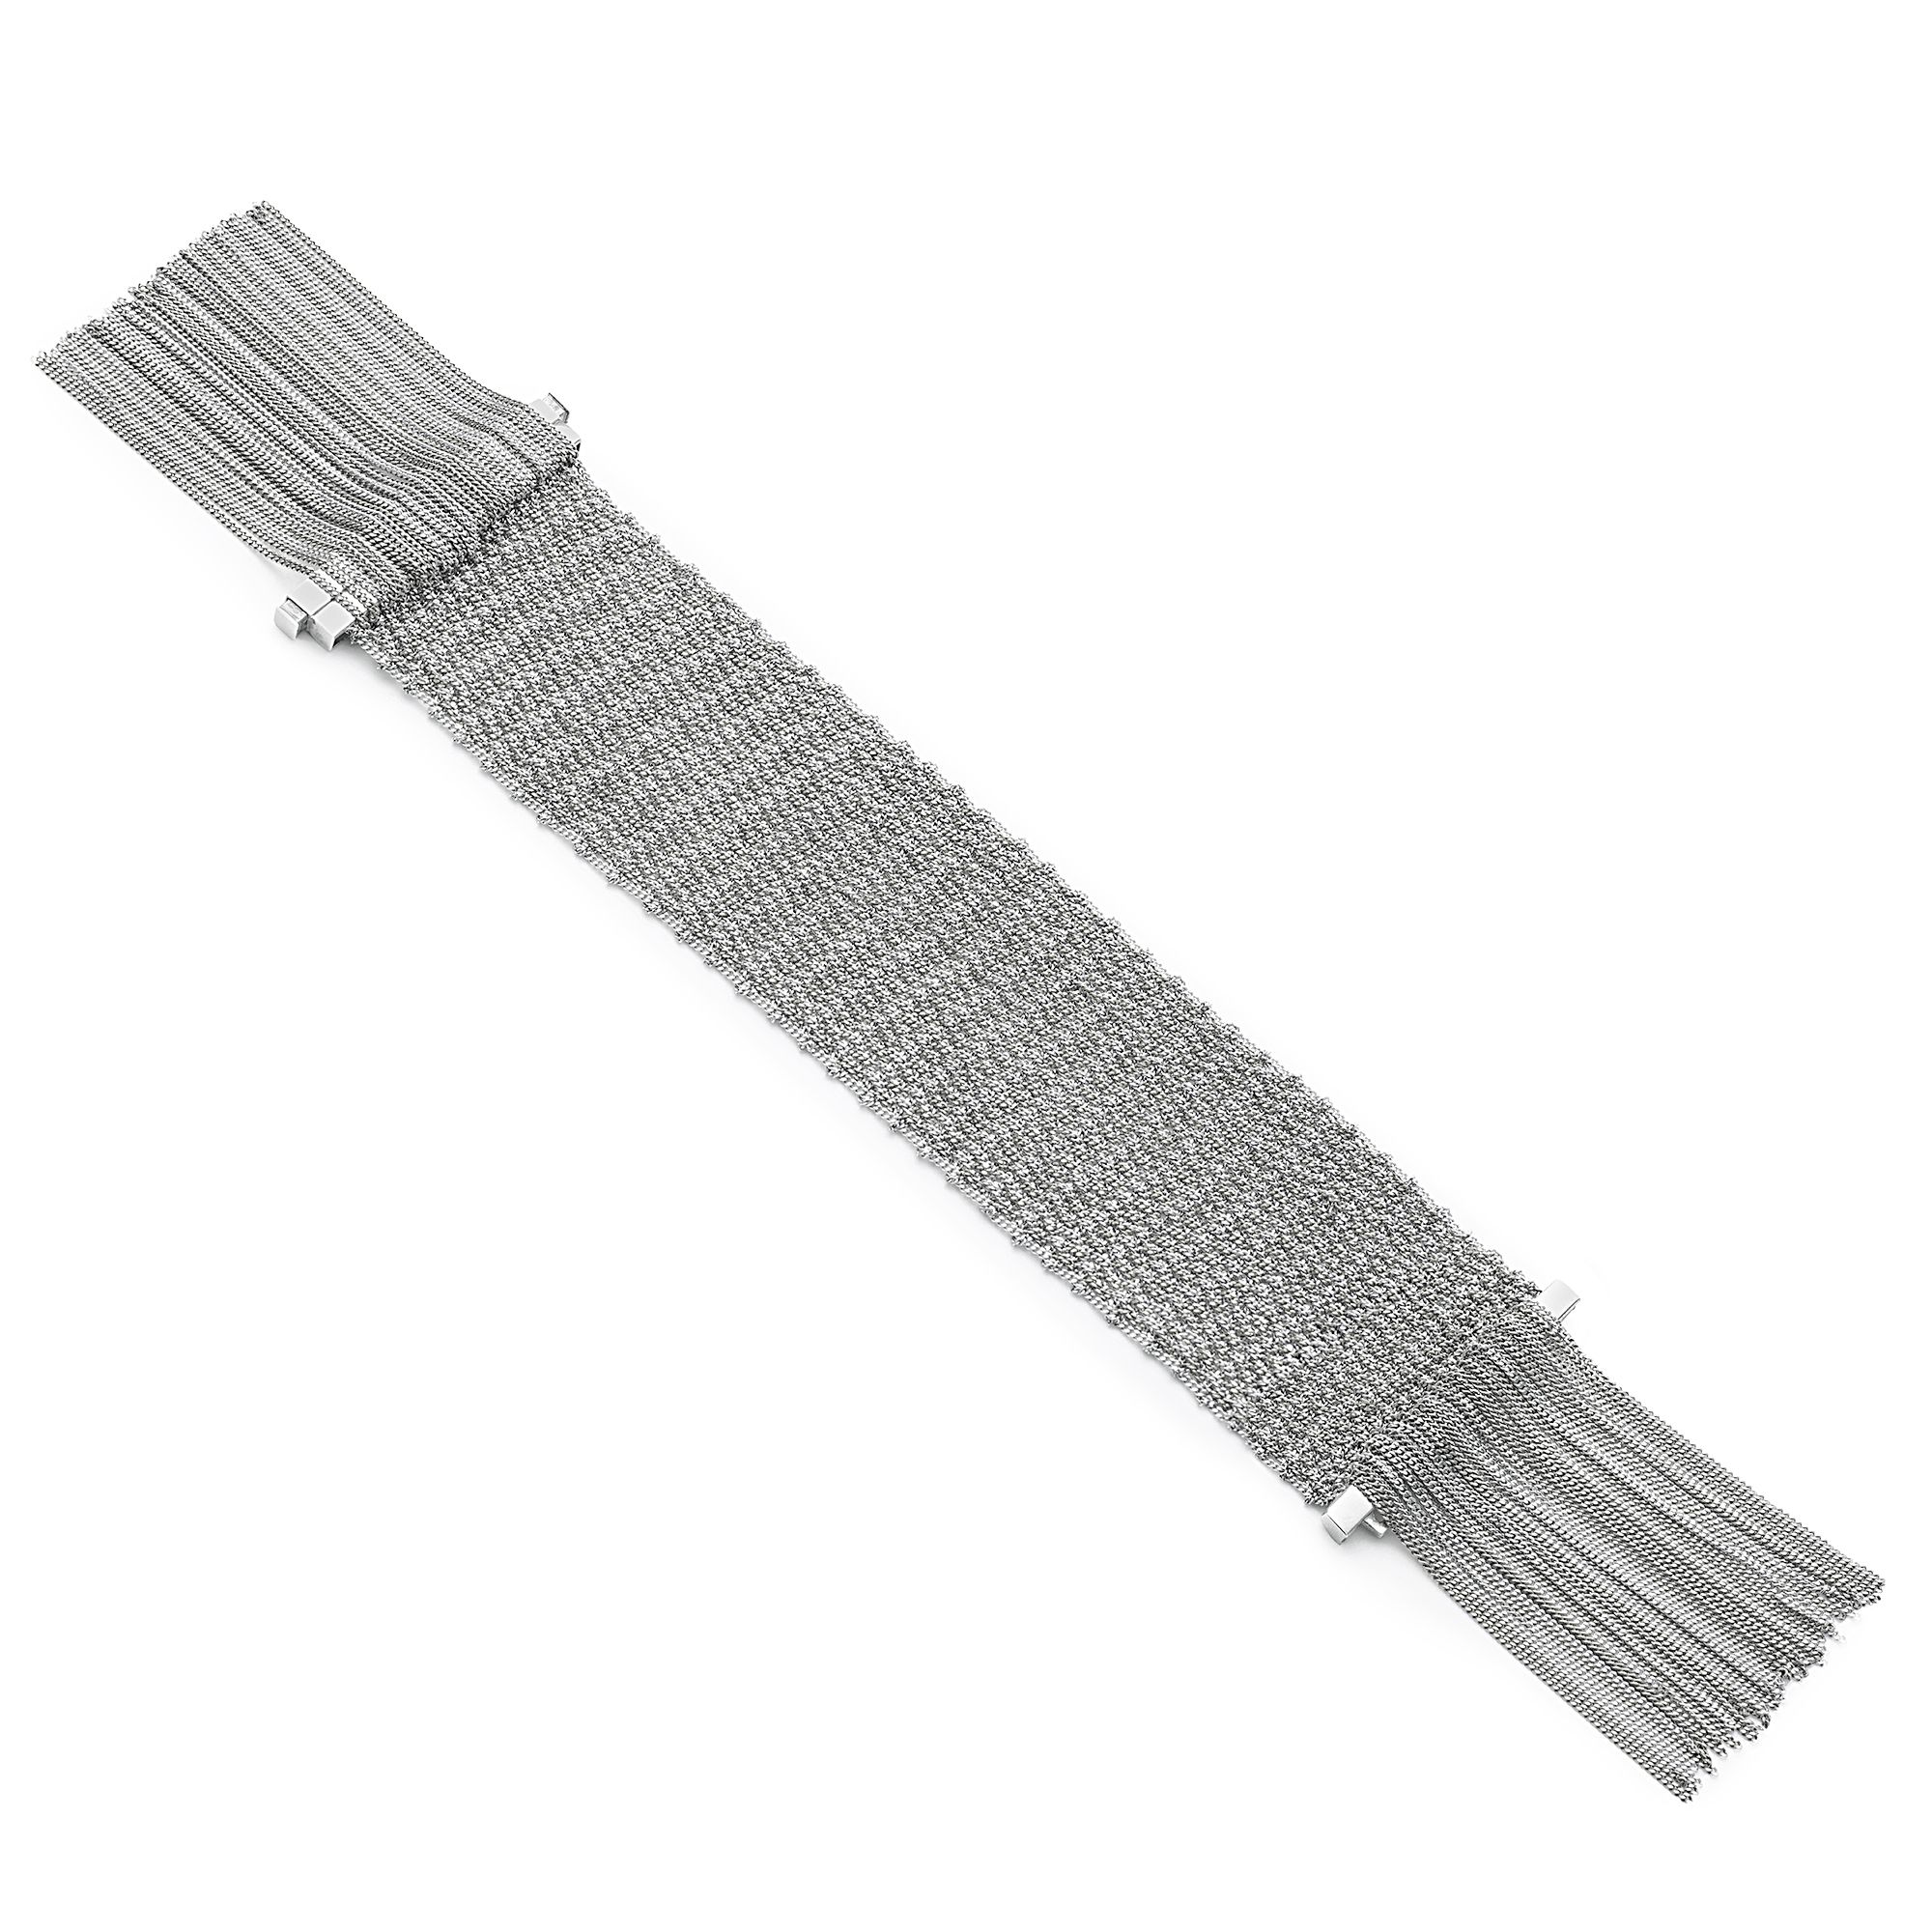 Silver knit bracelet with fringes Silver bracelet